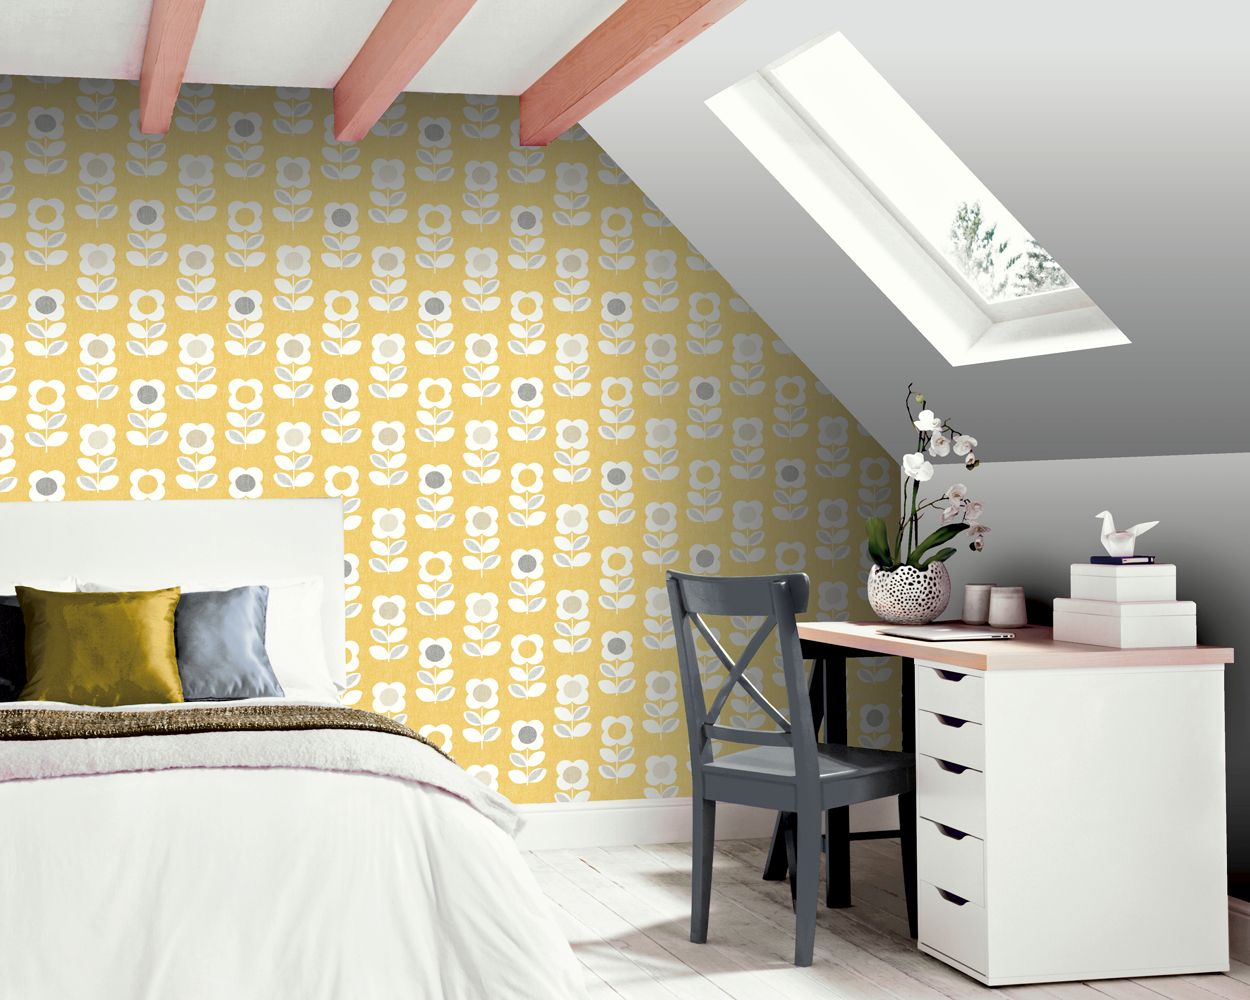 3arthouse_retro-floral-yellow-roomset.jpg